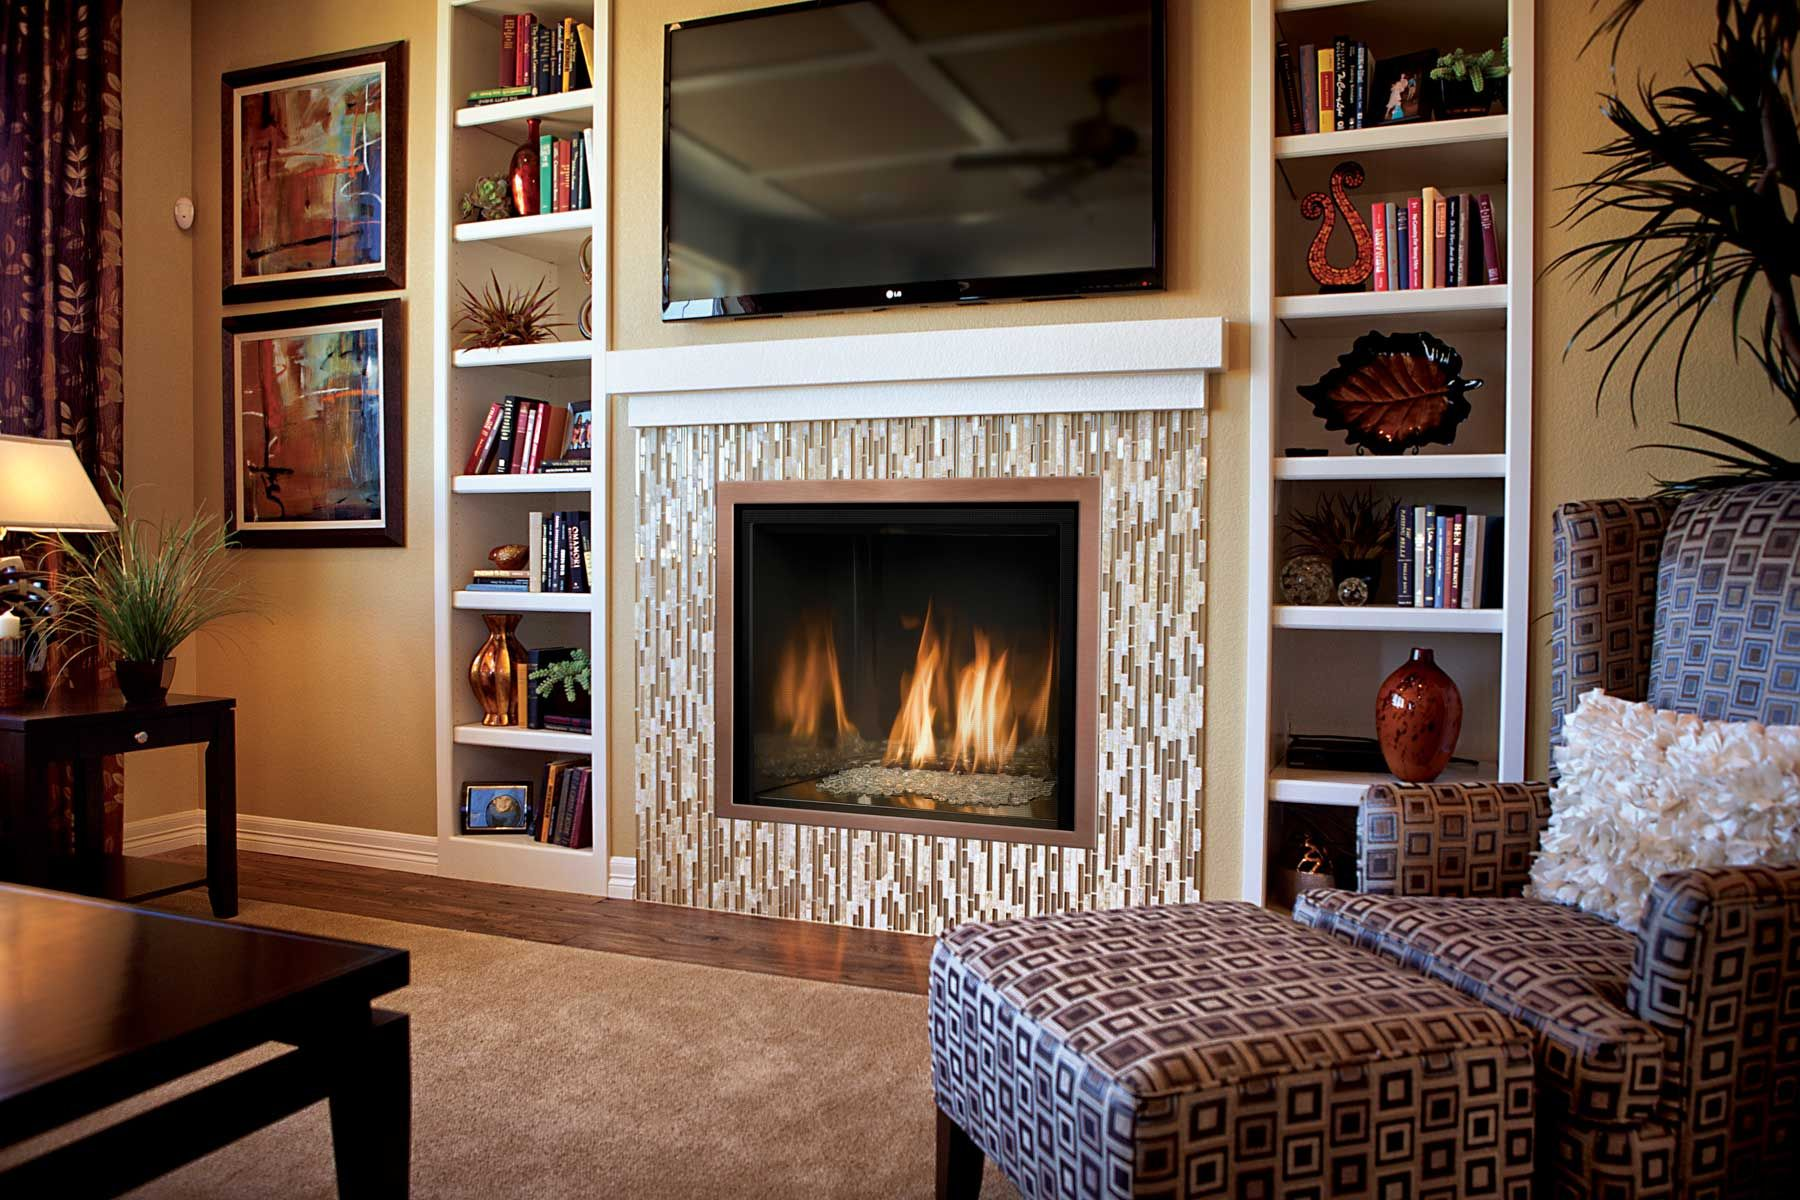 Uncategorized Fireplace With Shelf fireplace with rectangle white brown frame combined shelf also tv above placed on the middle